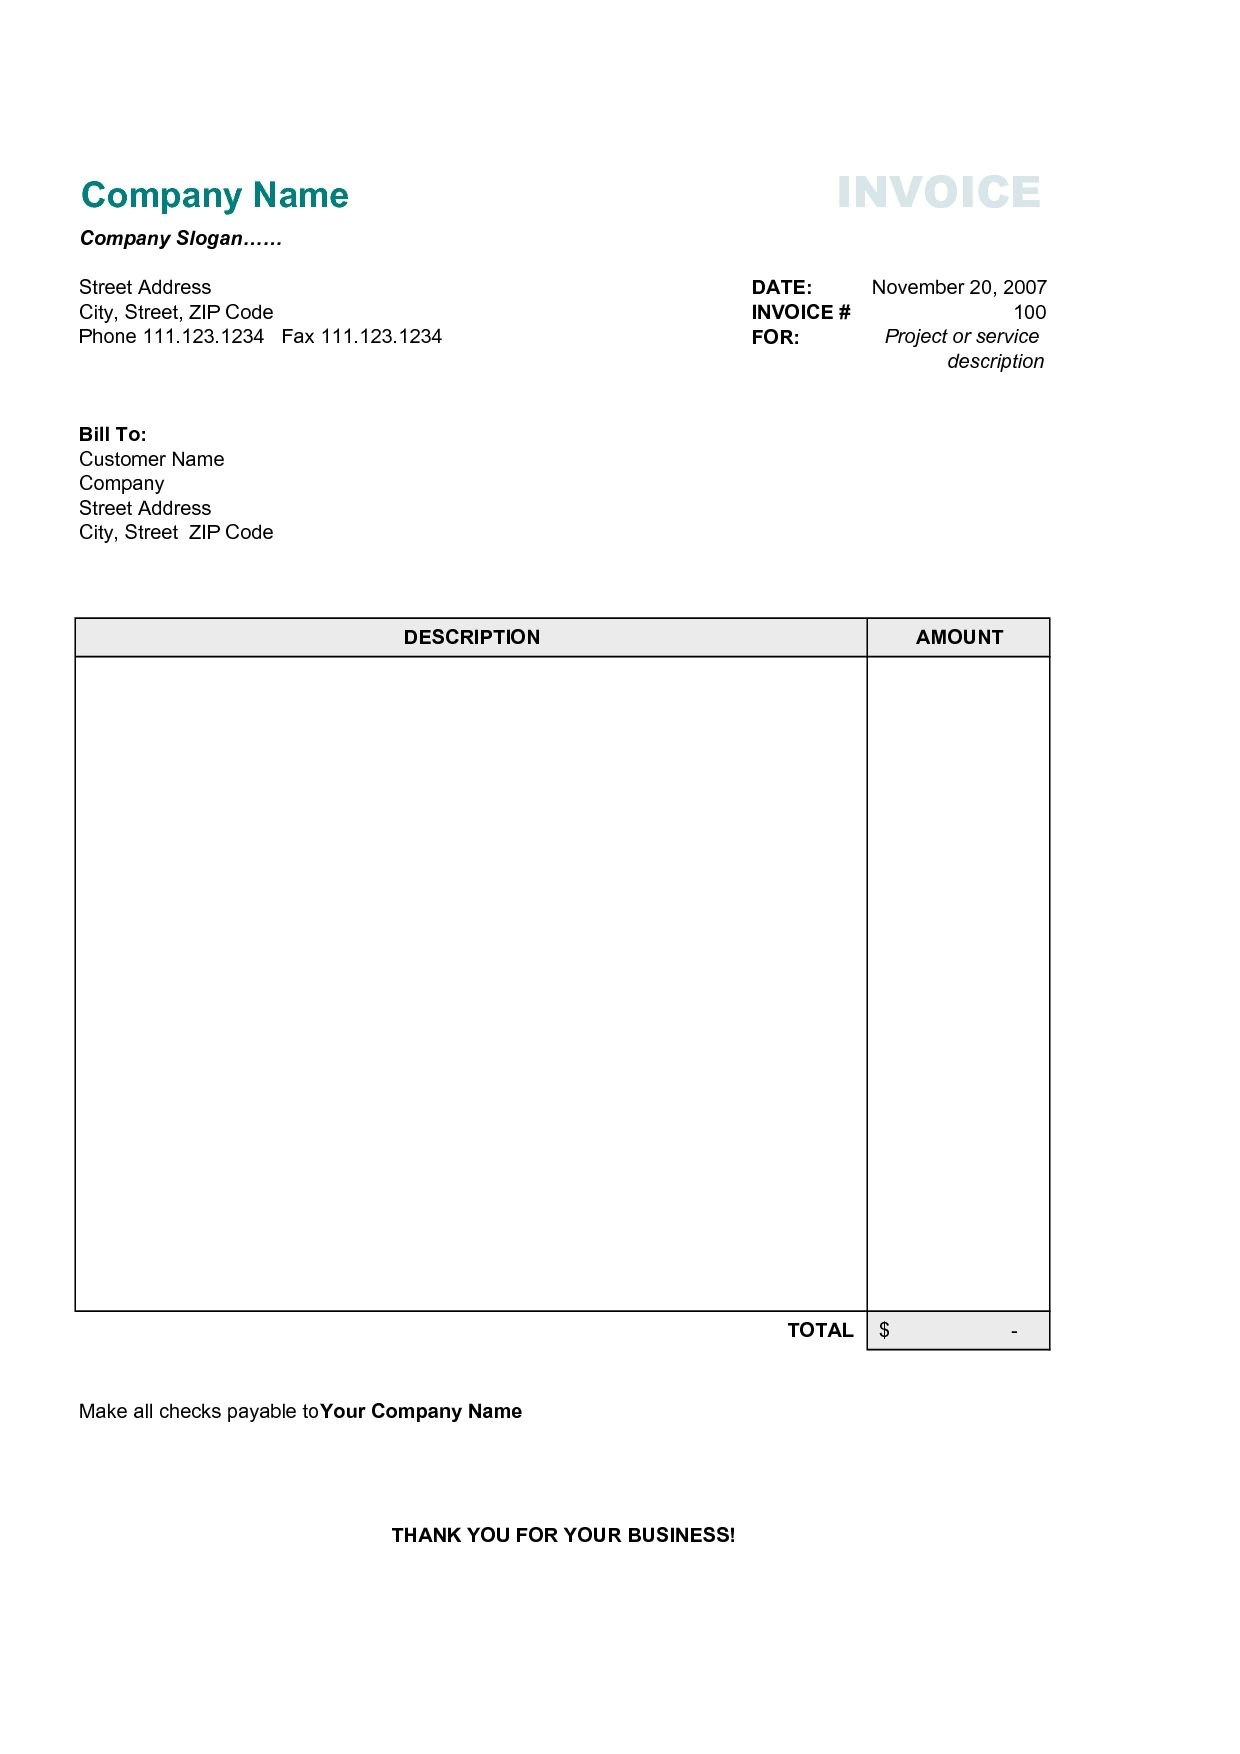 Free Business Invoice Template Best Business Template Free Invoice Throughout Invoice Template In Excel 2007